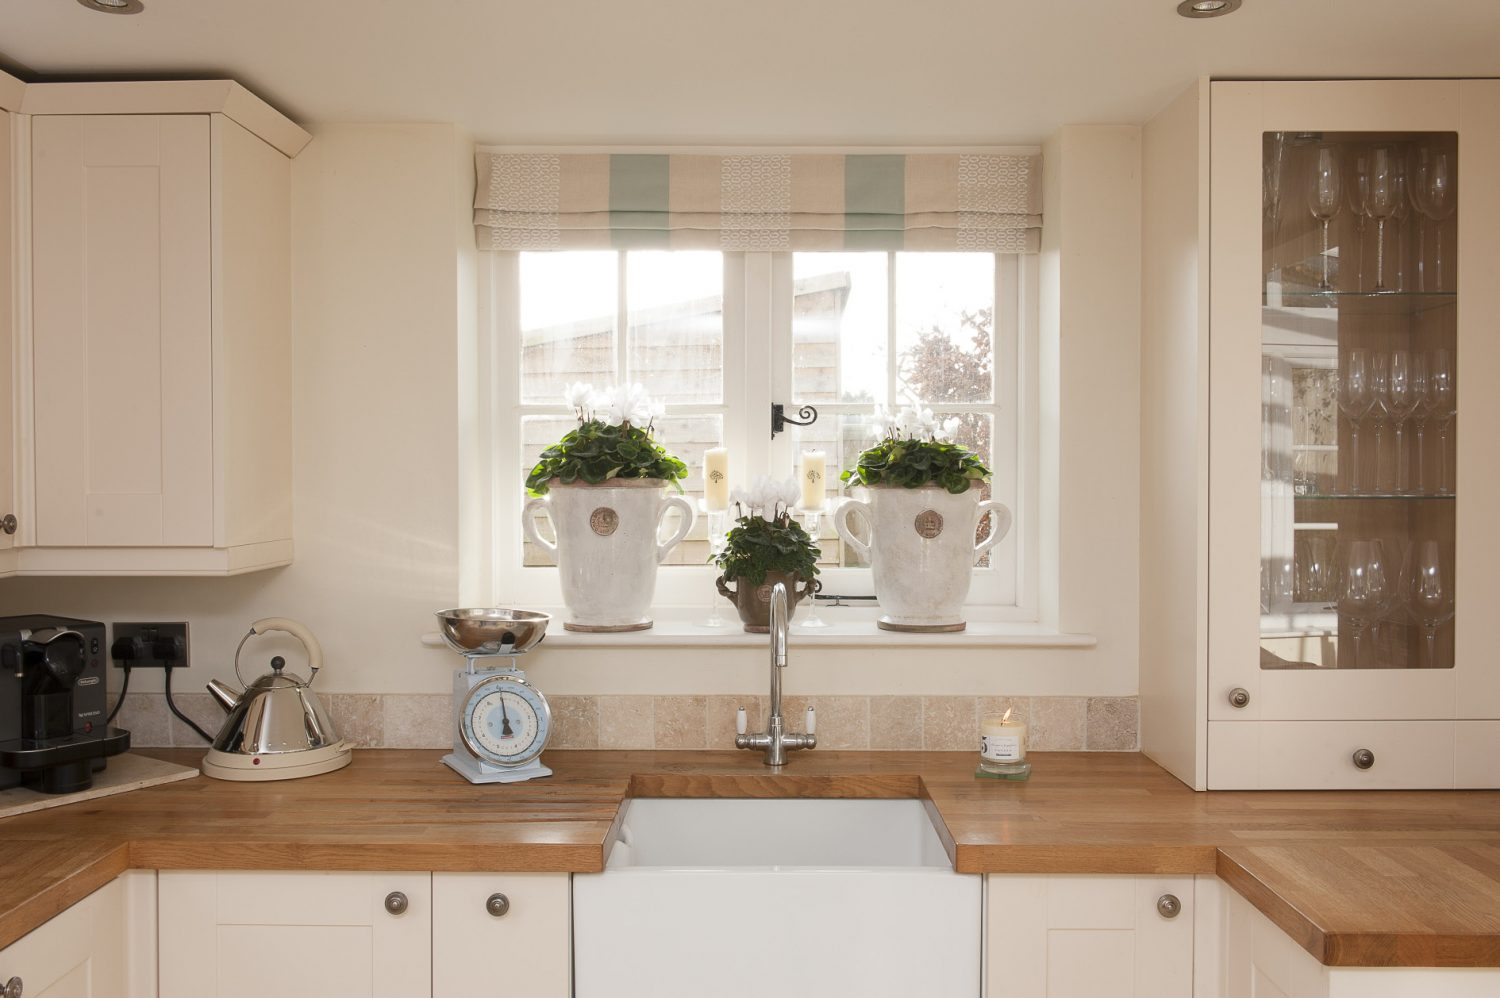 """The kitchen was next door in what is now a utility room. We moved it in here and took down the wall into the conservatory."""